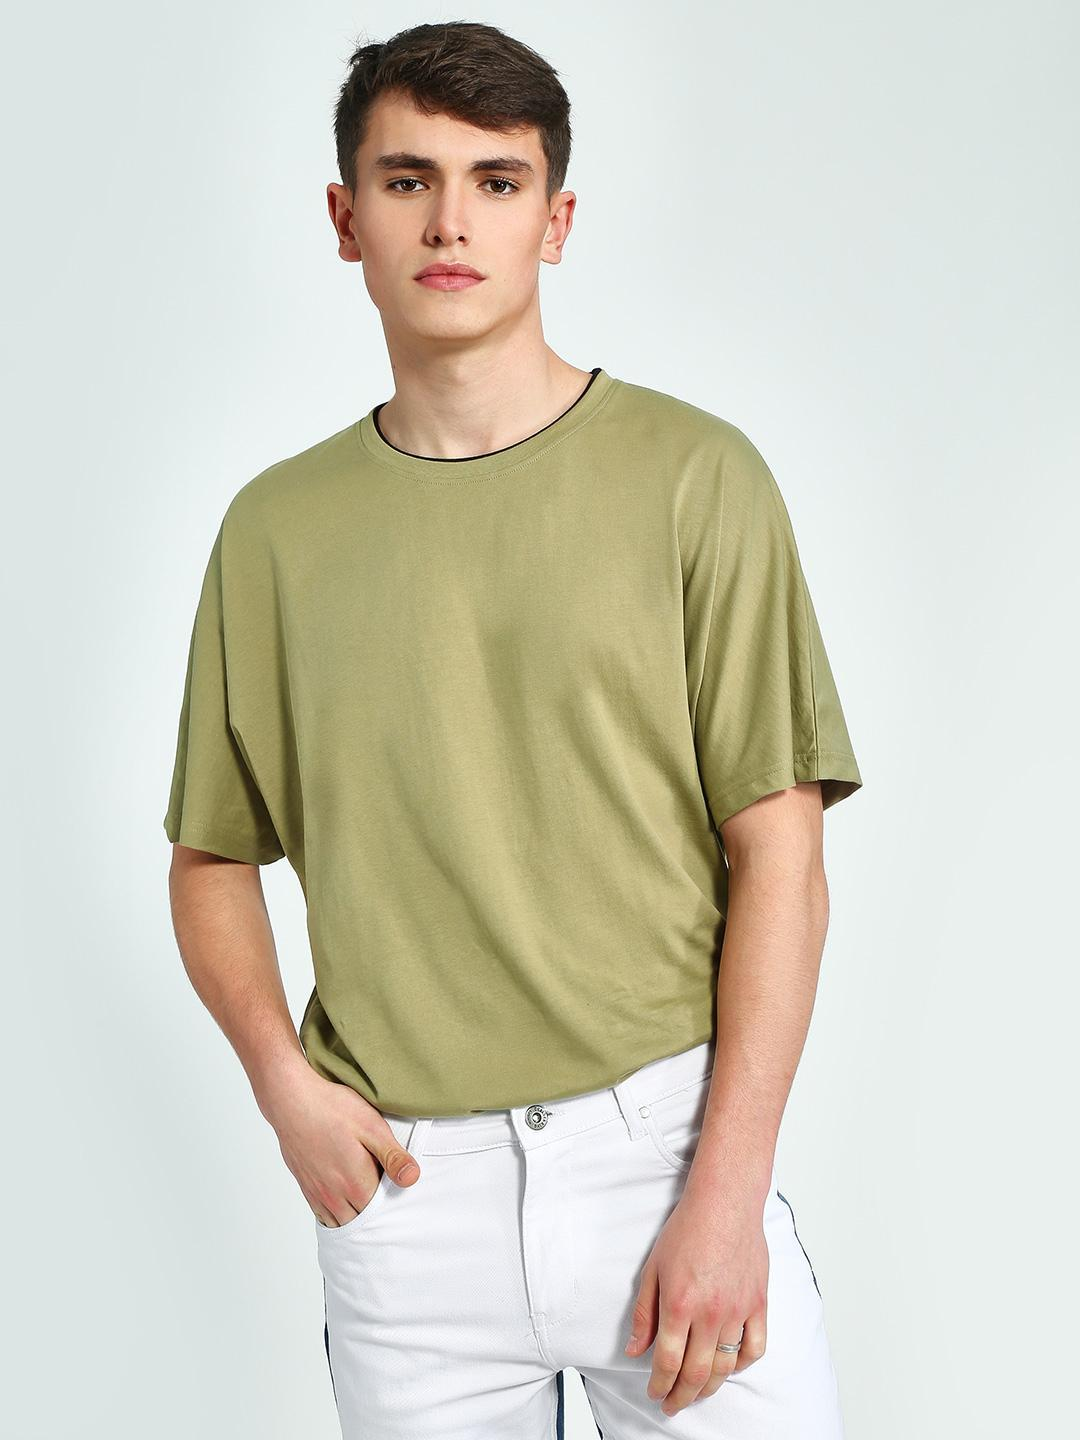 Blue Saint Green Contrast Ribbed Crew Neck T-Shirt 1